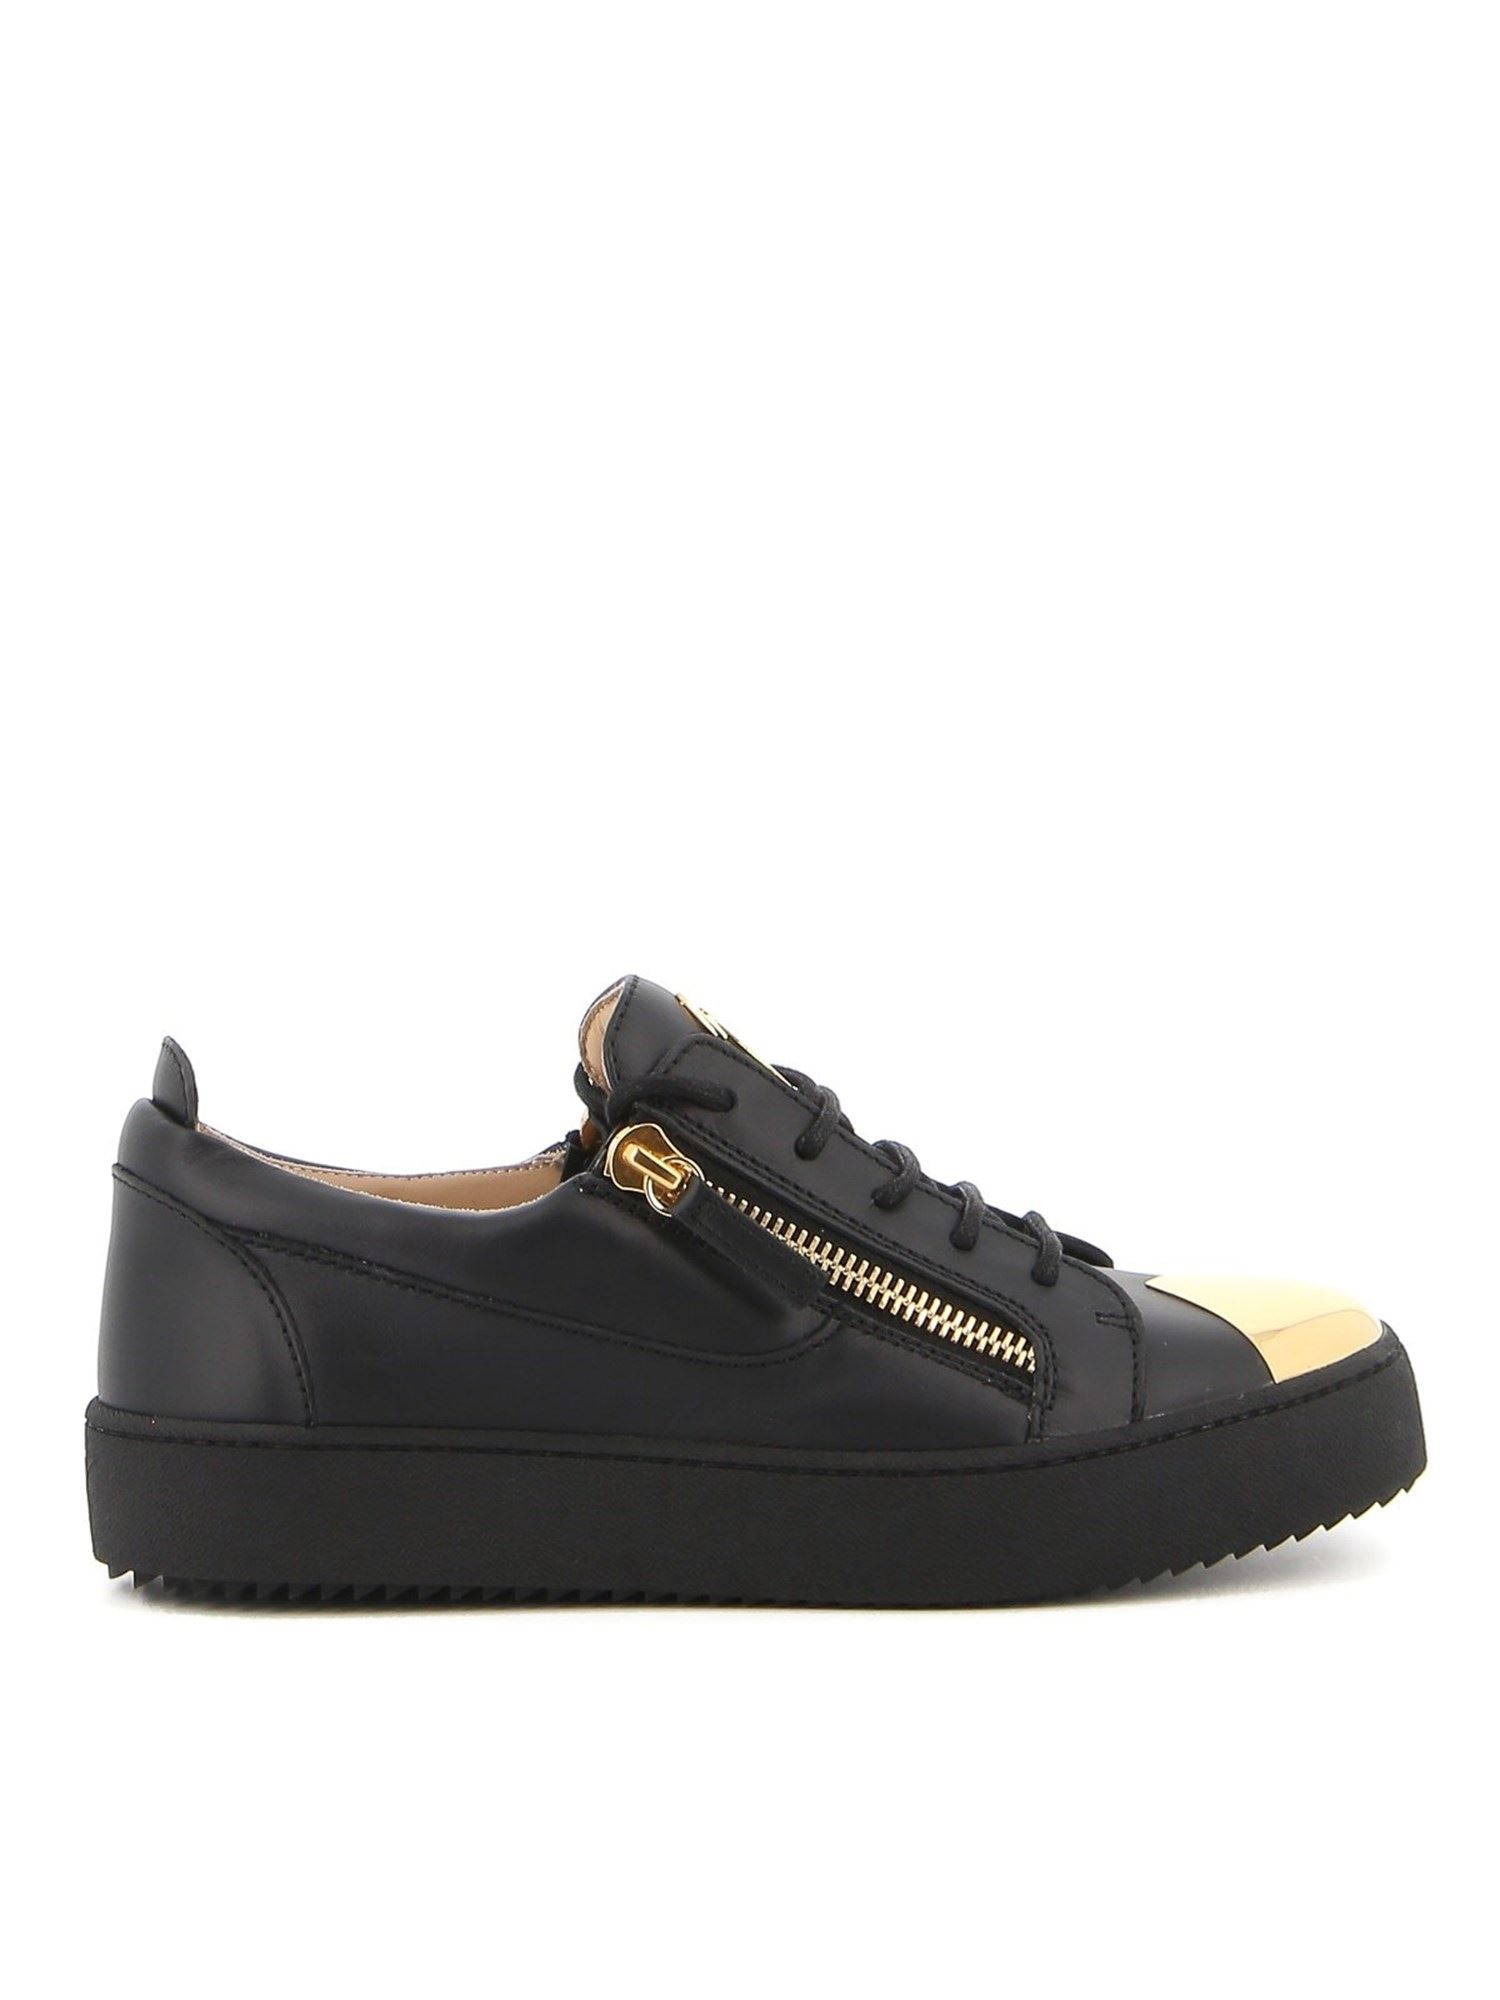 GIUSEPPE ZANOTTI GIUSEPPE ZANOTTI MAY LONDON LEATHER SNEAKERS IN BLACK